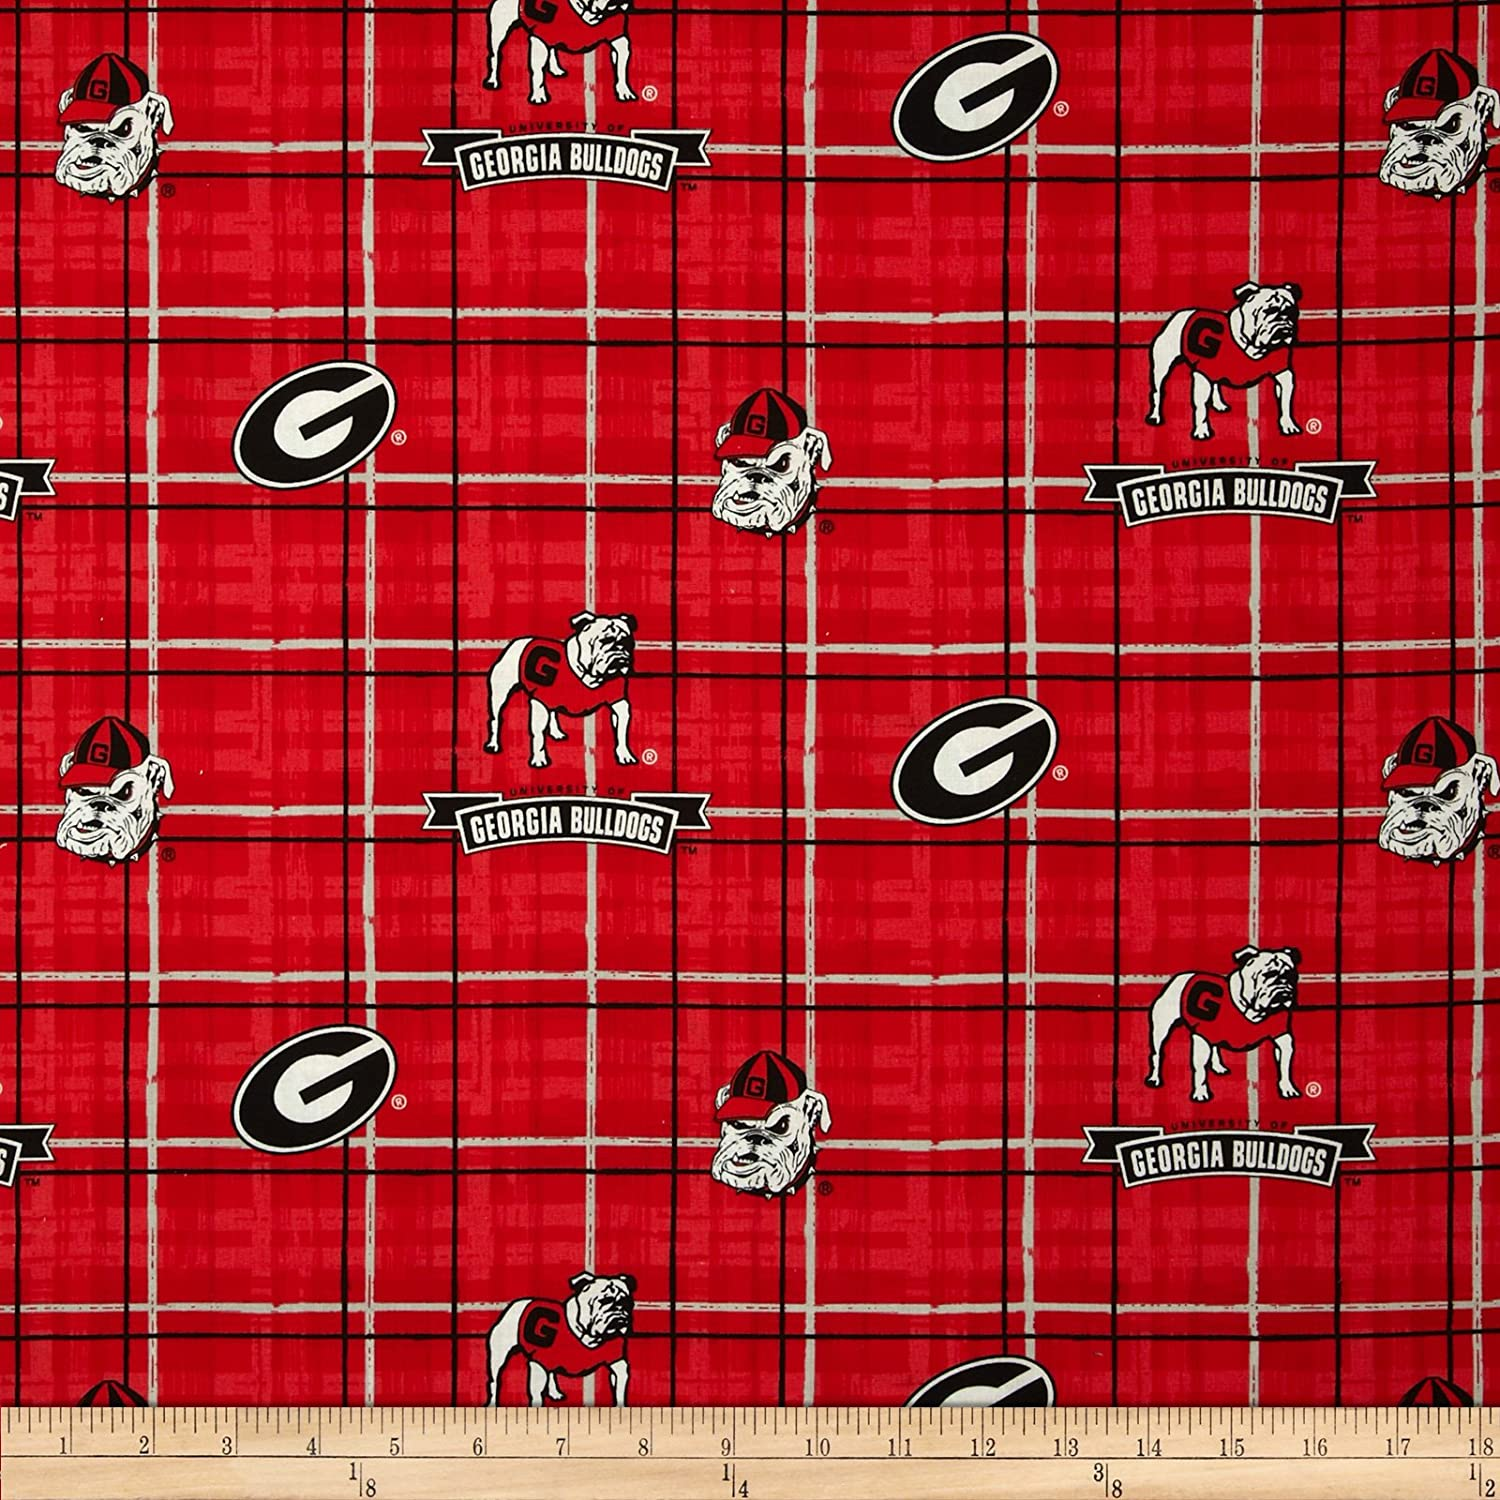 Collegiate Cotton Broadcloth University of Georgia Plaid Red Fabric By The Yard by Sykel Enterprises   B0063KKM0Y